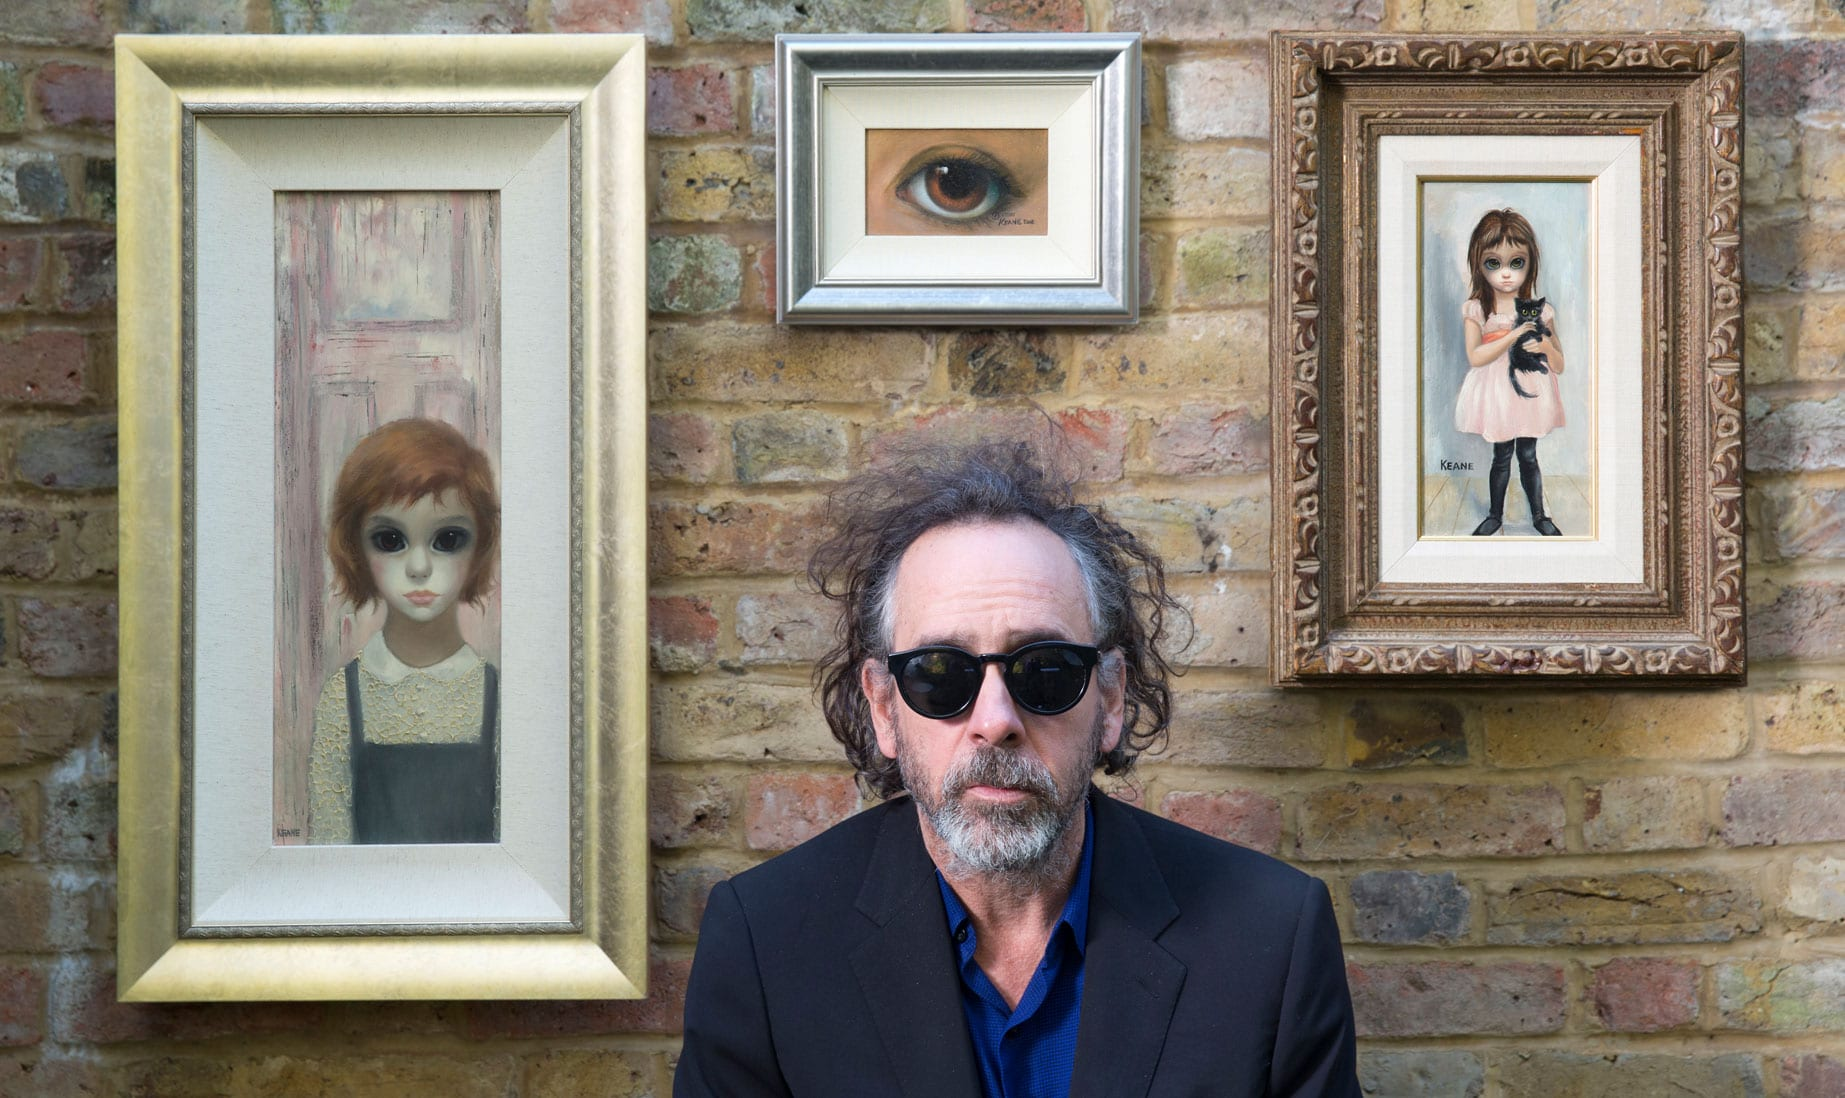 tim_burton_keane_paintings_big-eyes